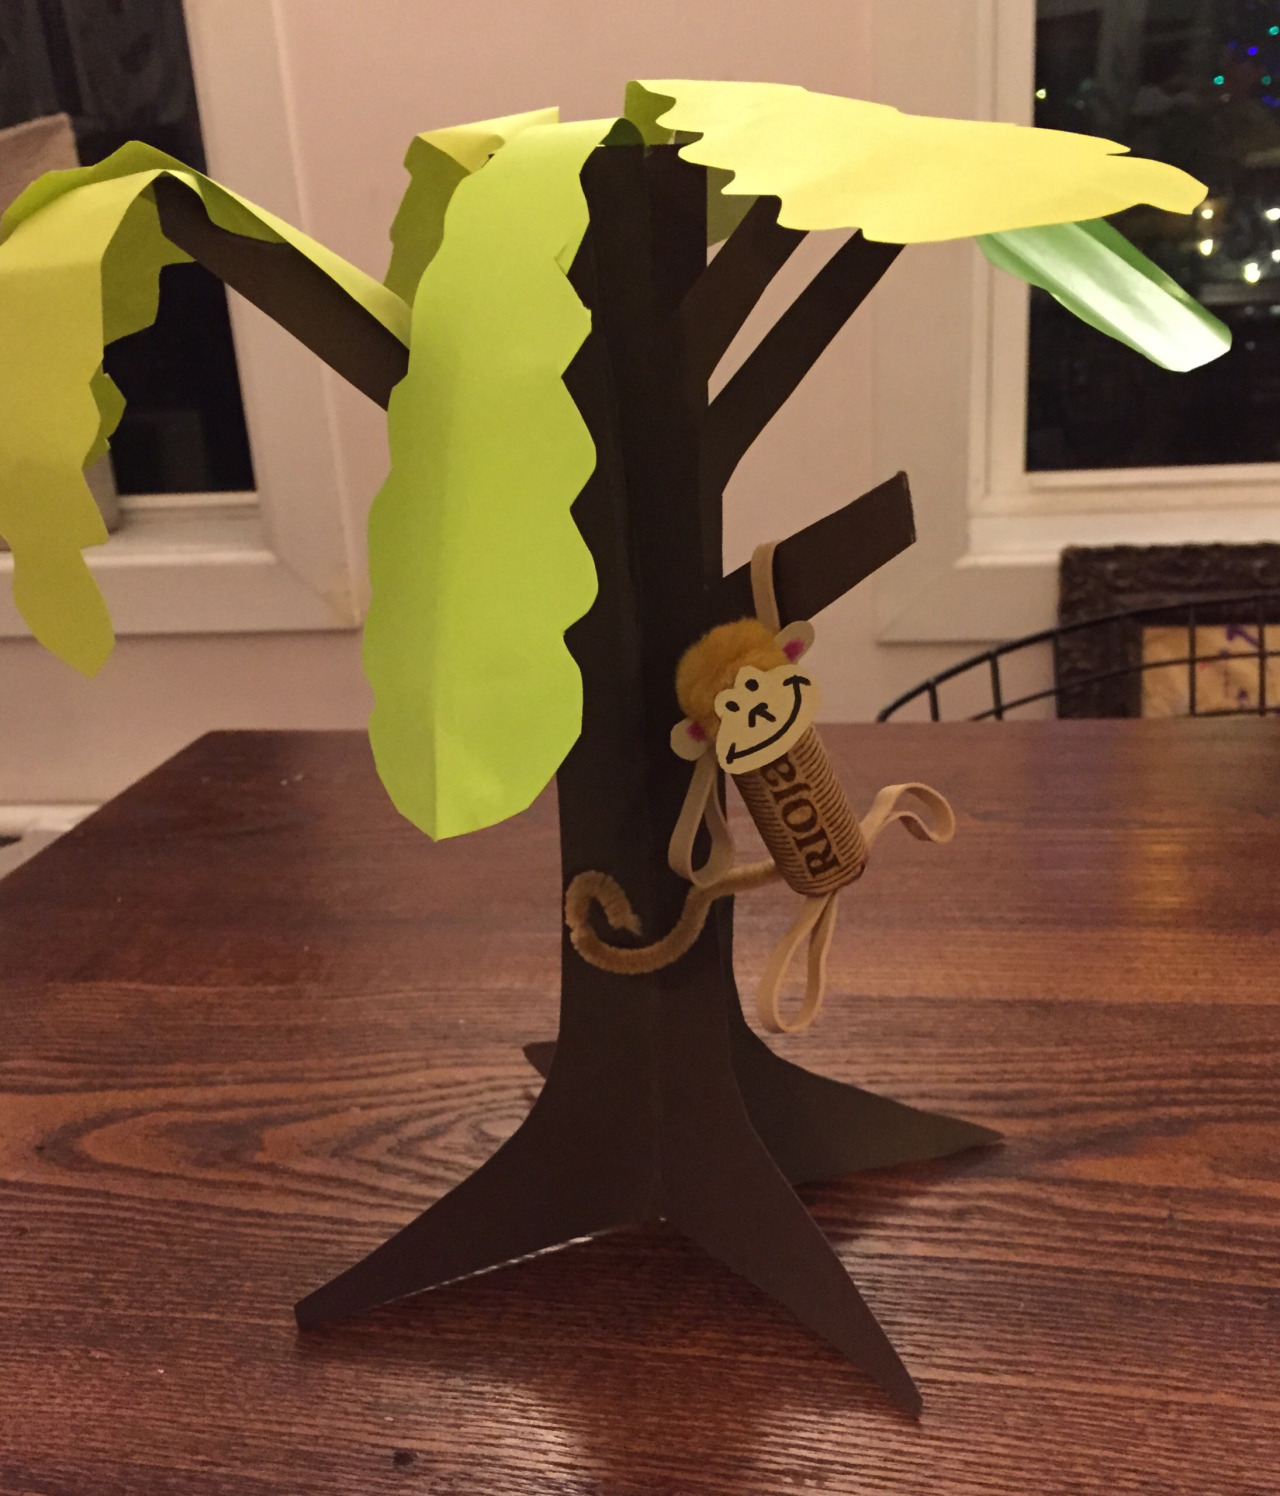 Class 11: Monkey and Tree    Nothing like hanging around, feeling groovy! I intended on using cardboard for the tree, but quickly realized that there's no way my kiddos would be able to cut through stiff board.    Construction paper - brown and green  Cork (monkey body)  Rubber bands for arms and legs, pinned to cork with thumbtack  Pom pom (head)  Pipe cleaner for tail